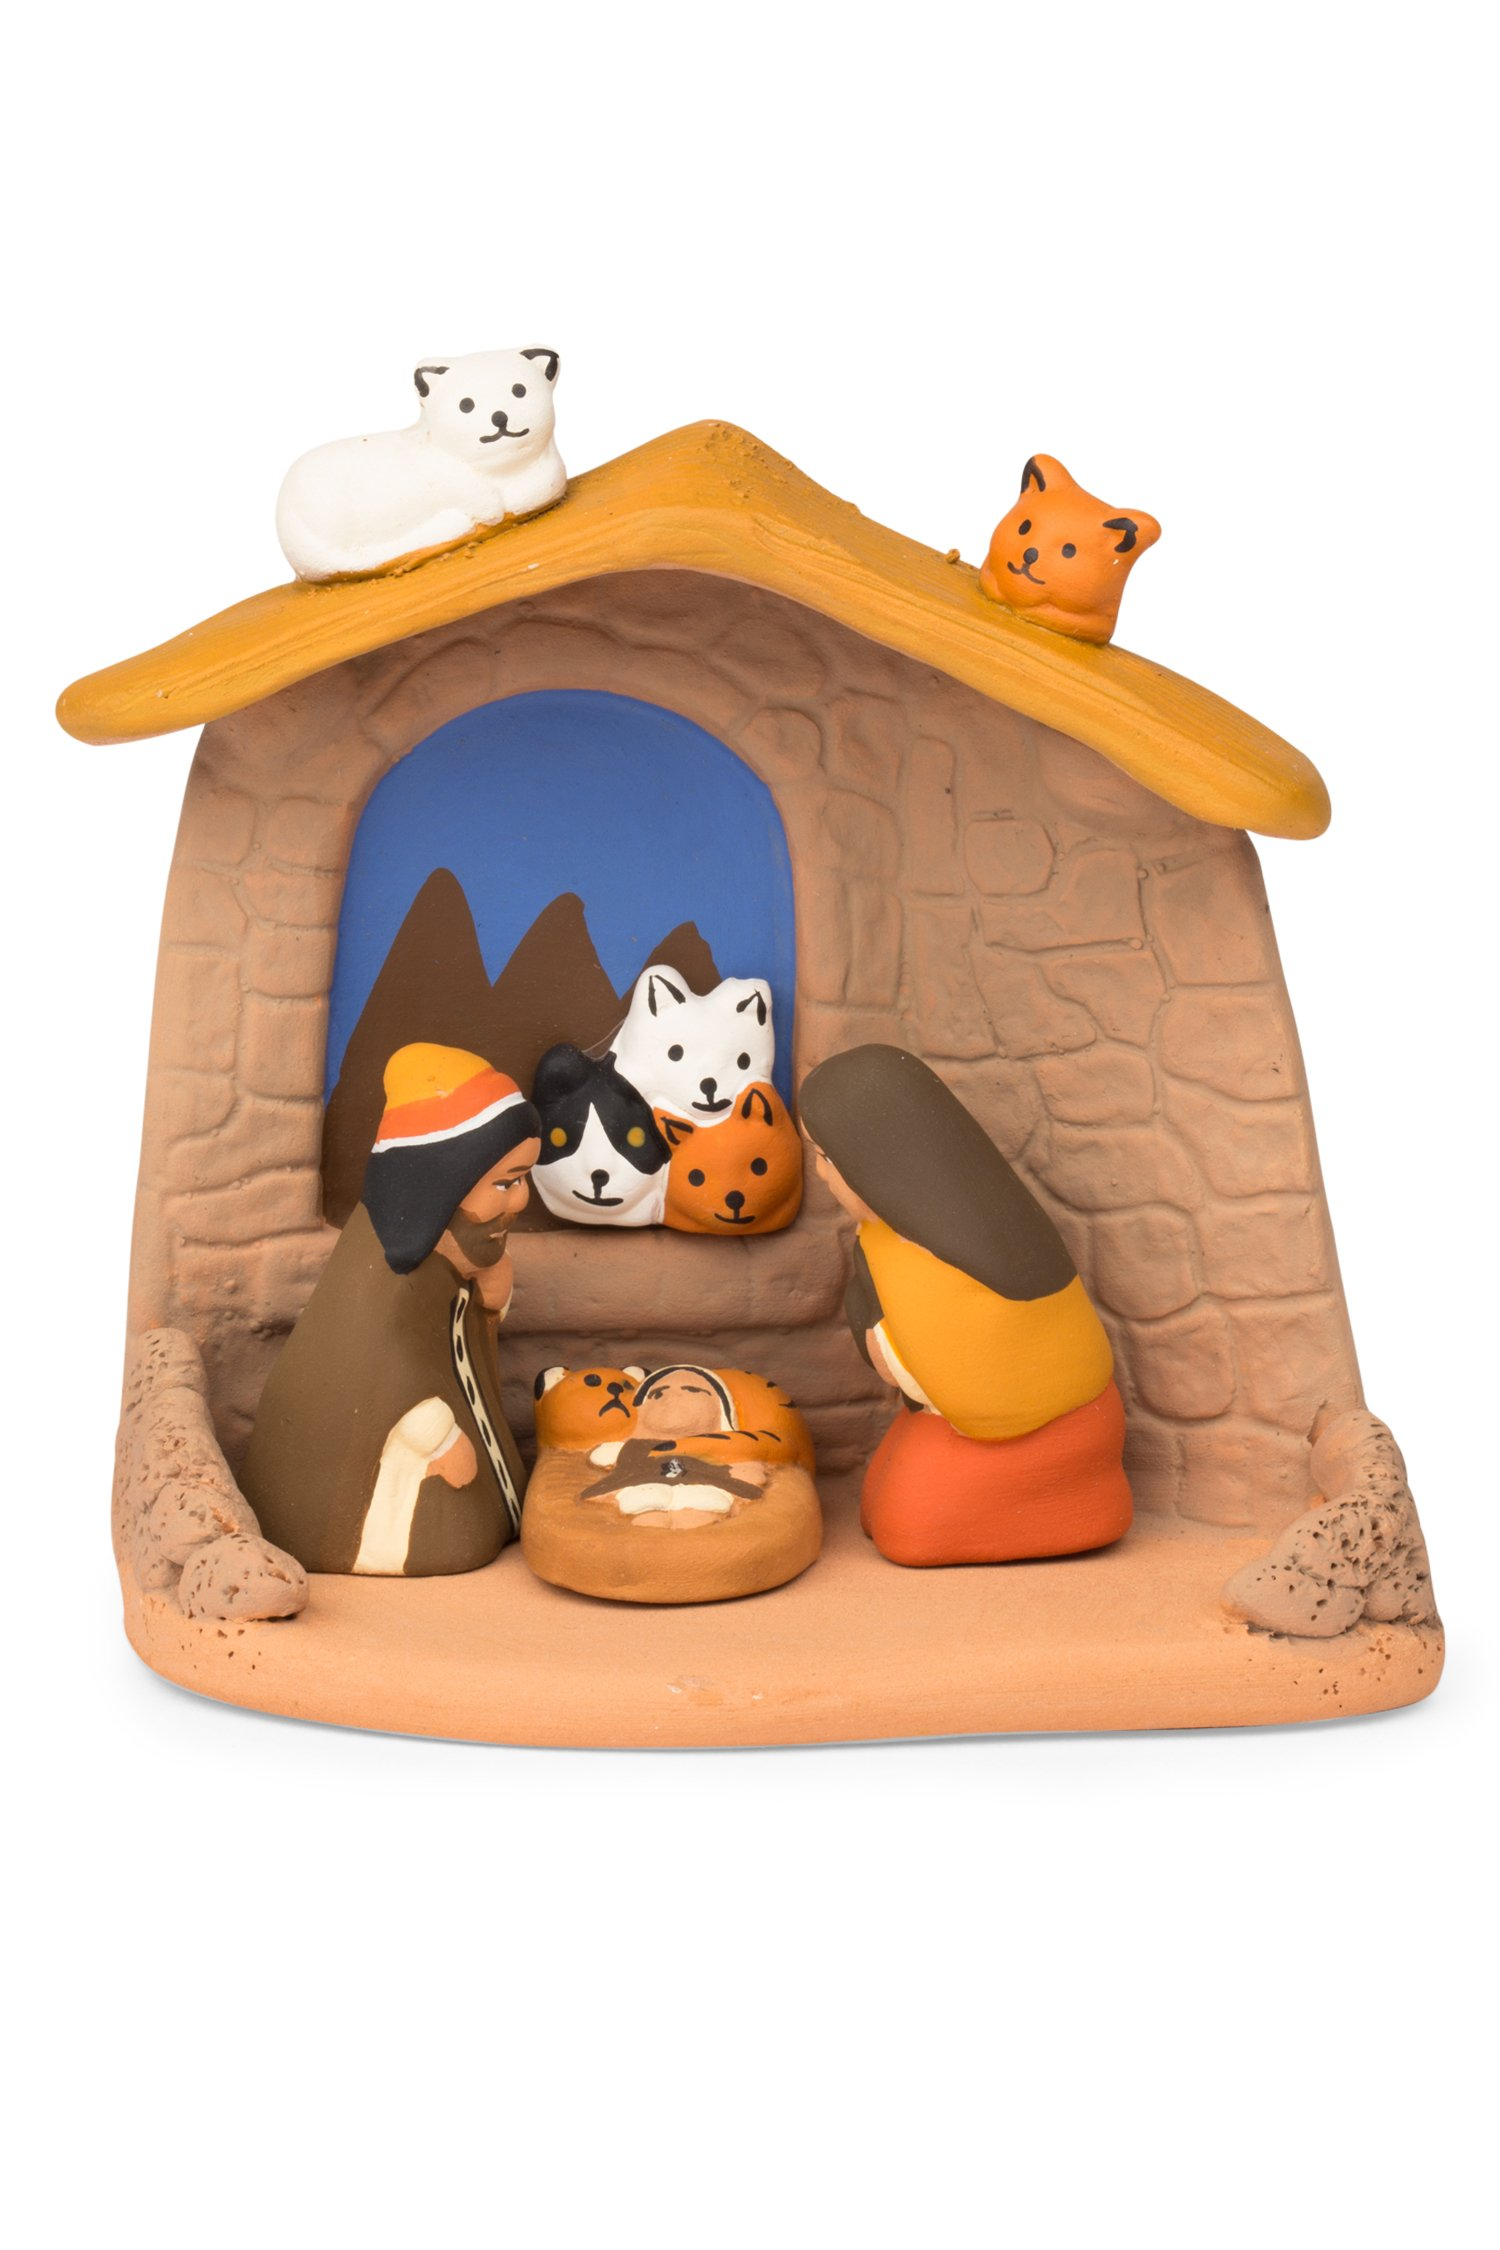 Ten Thousand Villages Cats In The Window Ceramic Nativity 'Cat Lover's Nativity'